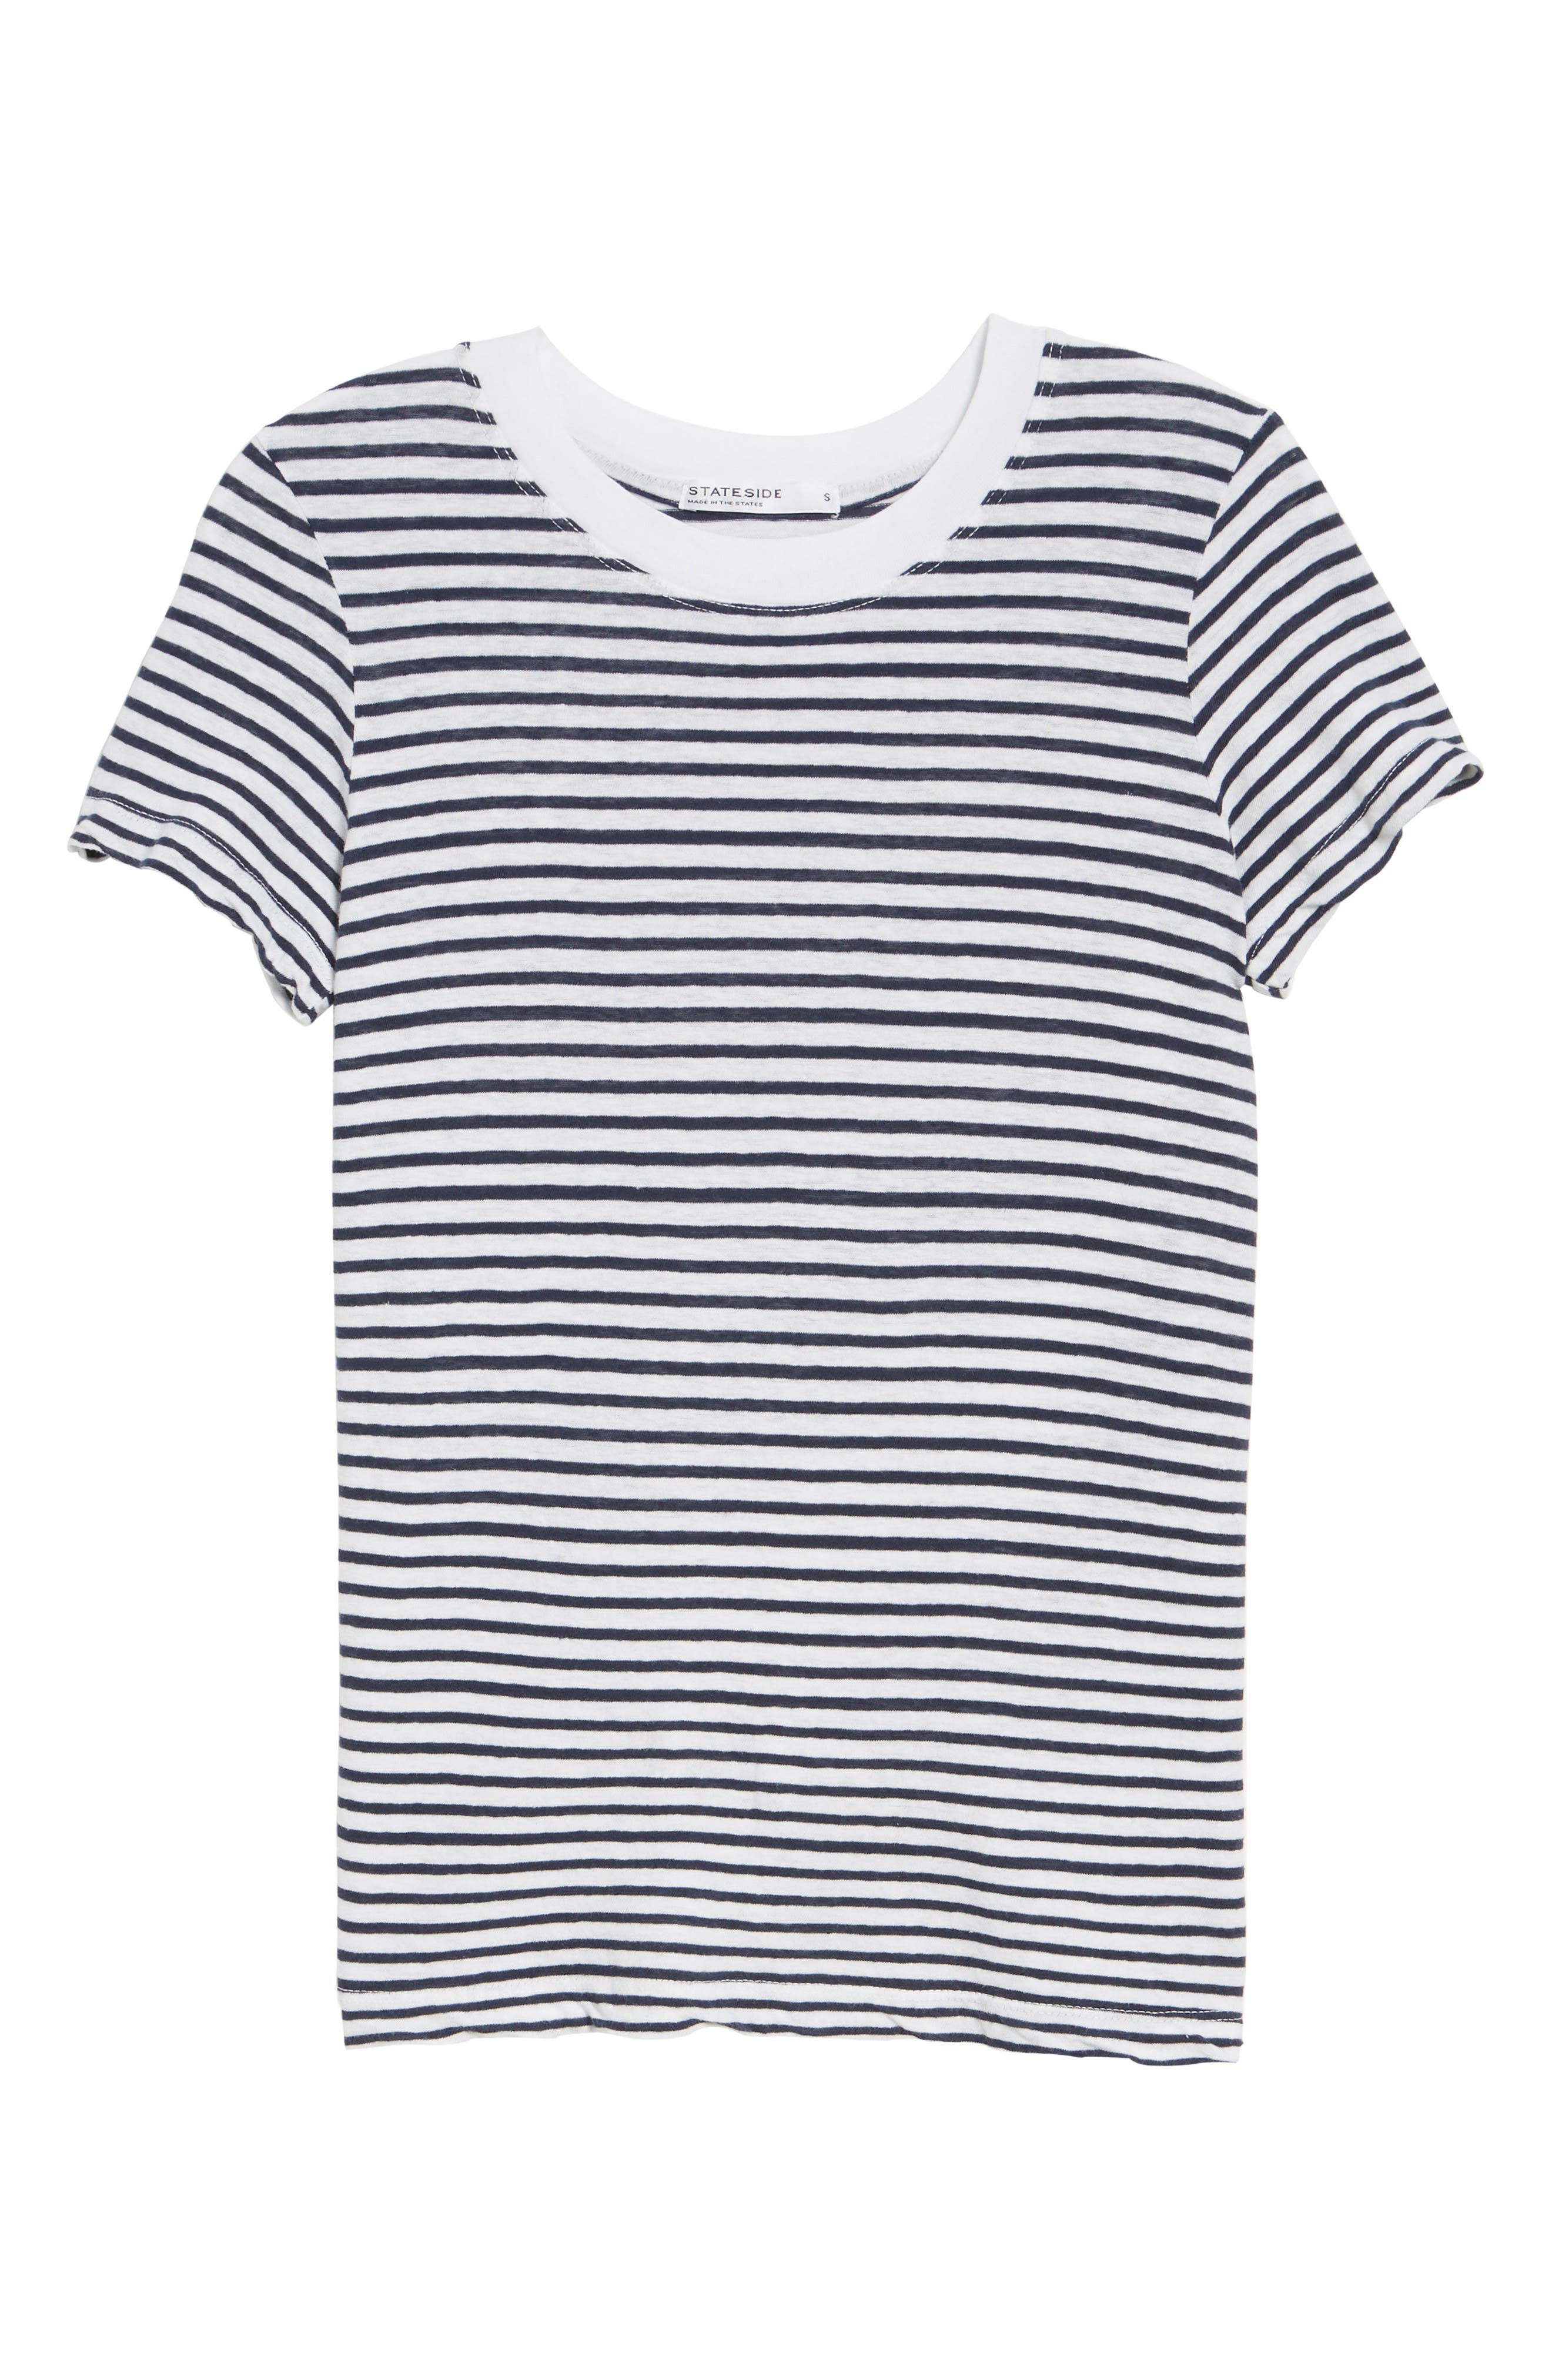 Stripe Linen Blend Boy Tee,                             Alternate thumbnail 6, color,                             Navy/ White